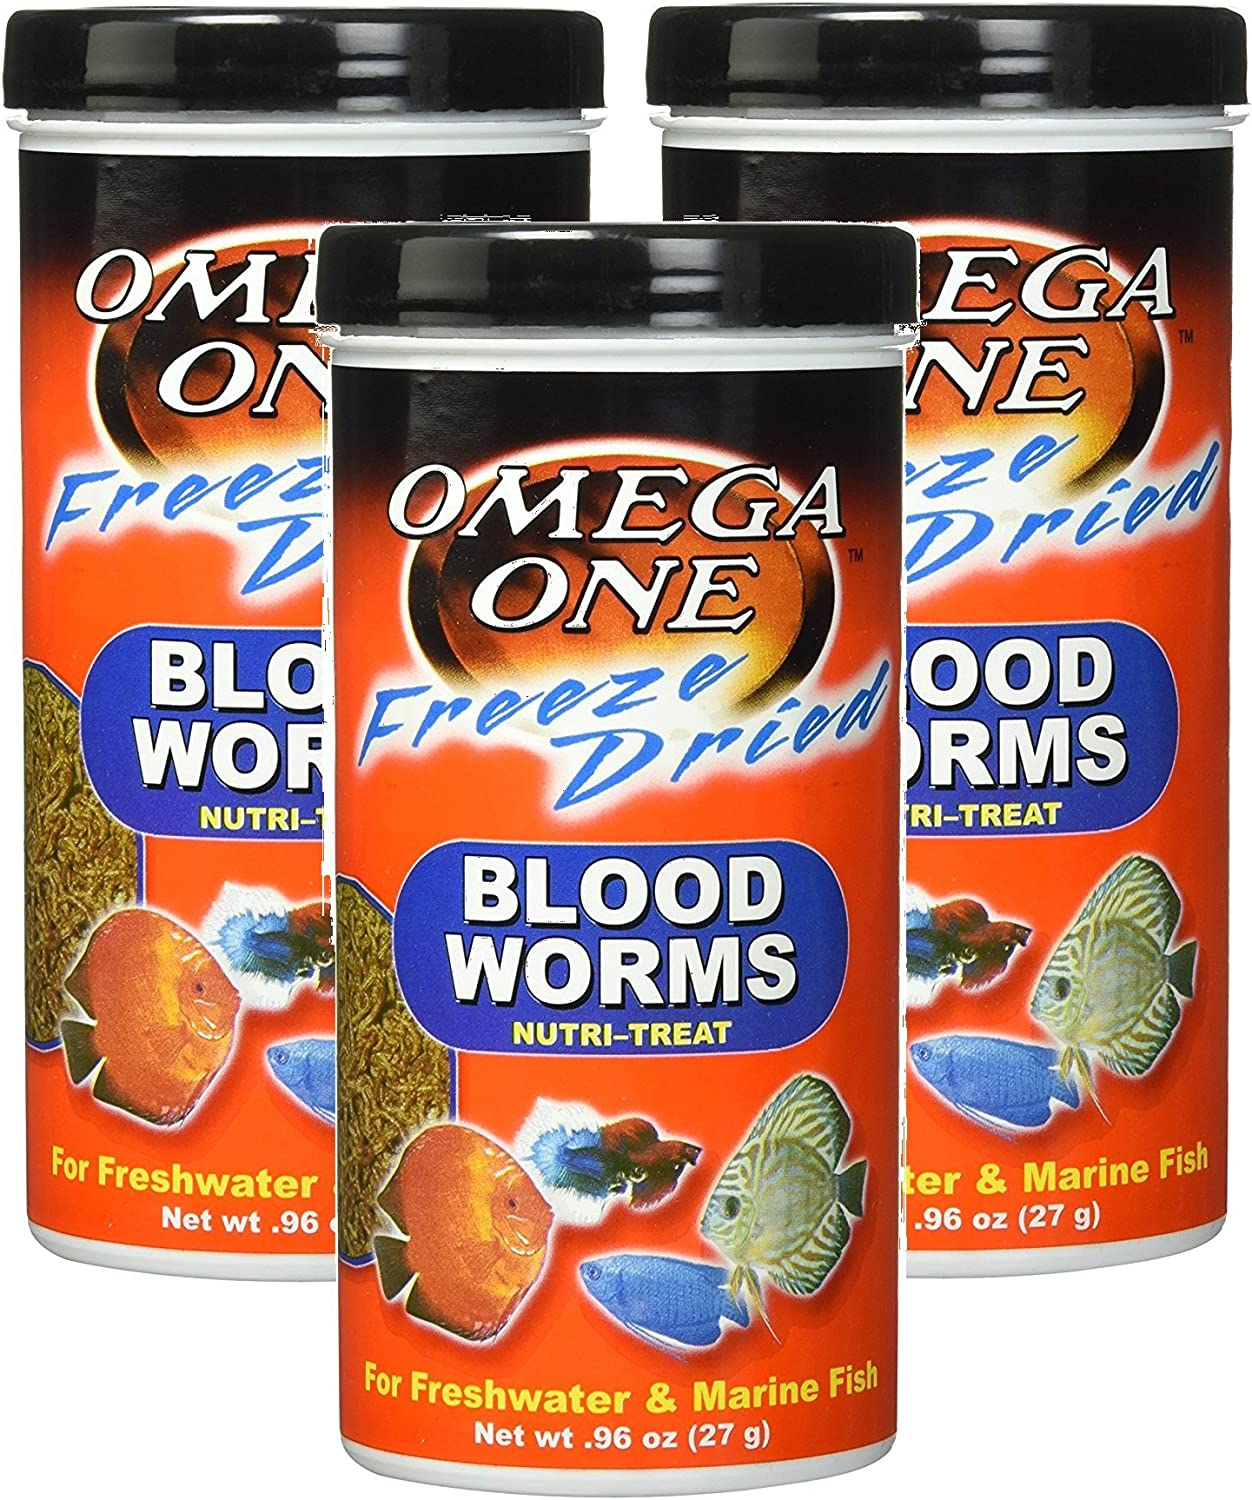 Omega One (3 Pack) Freeze Dried Blood Worms 0.96oz